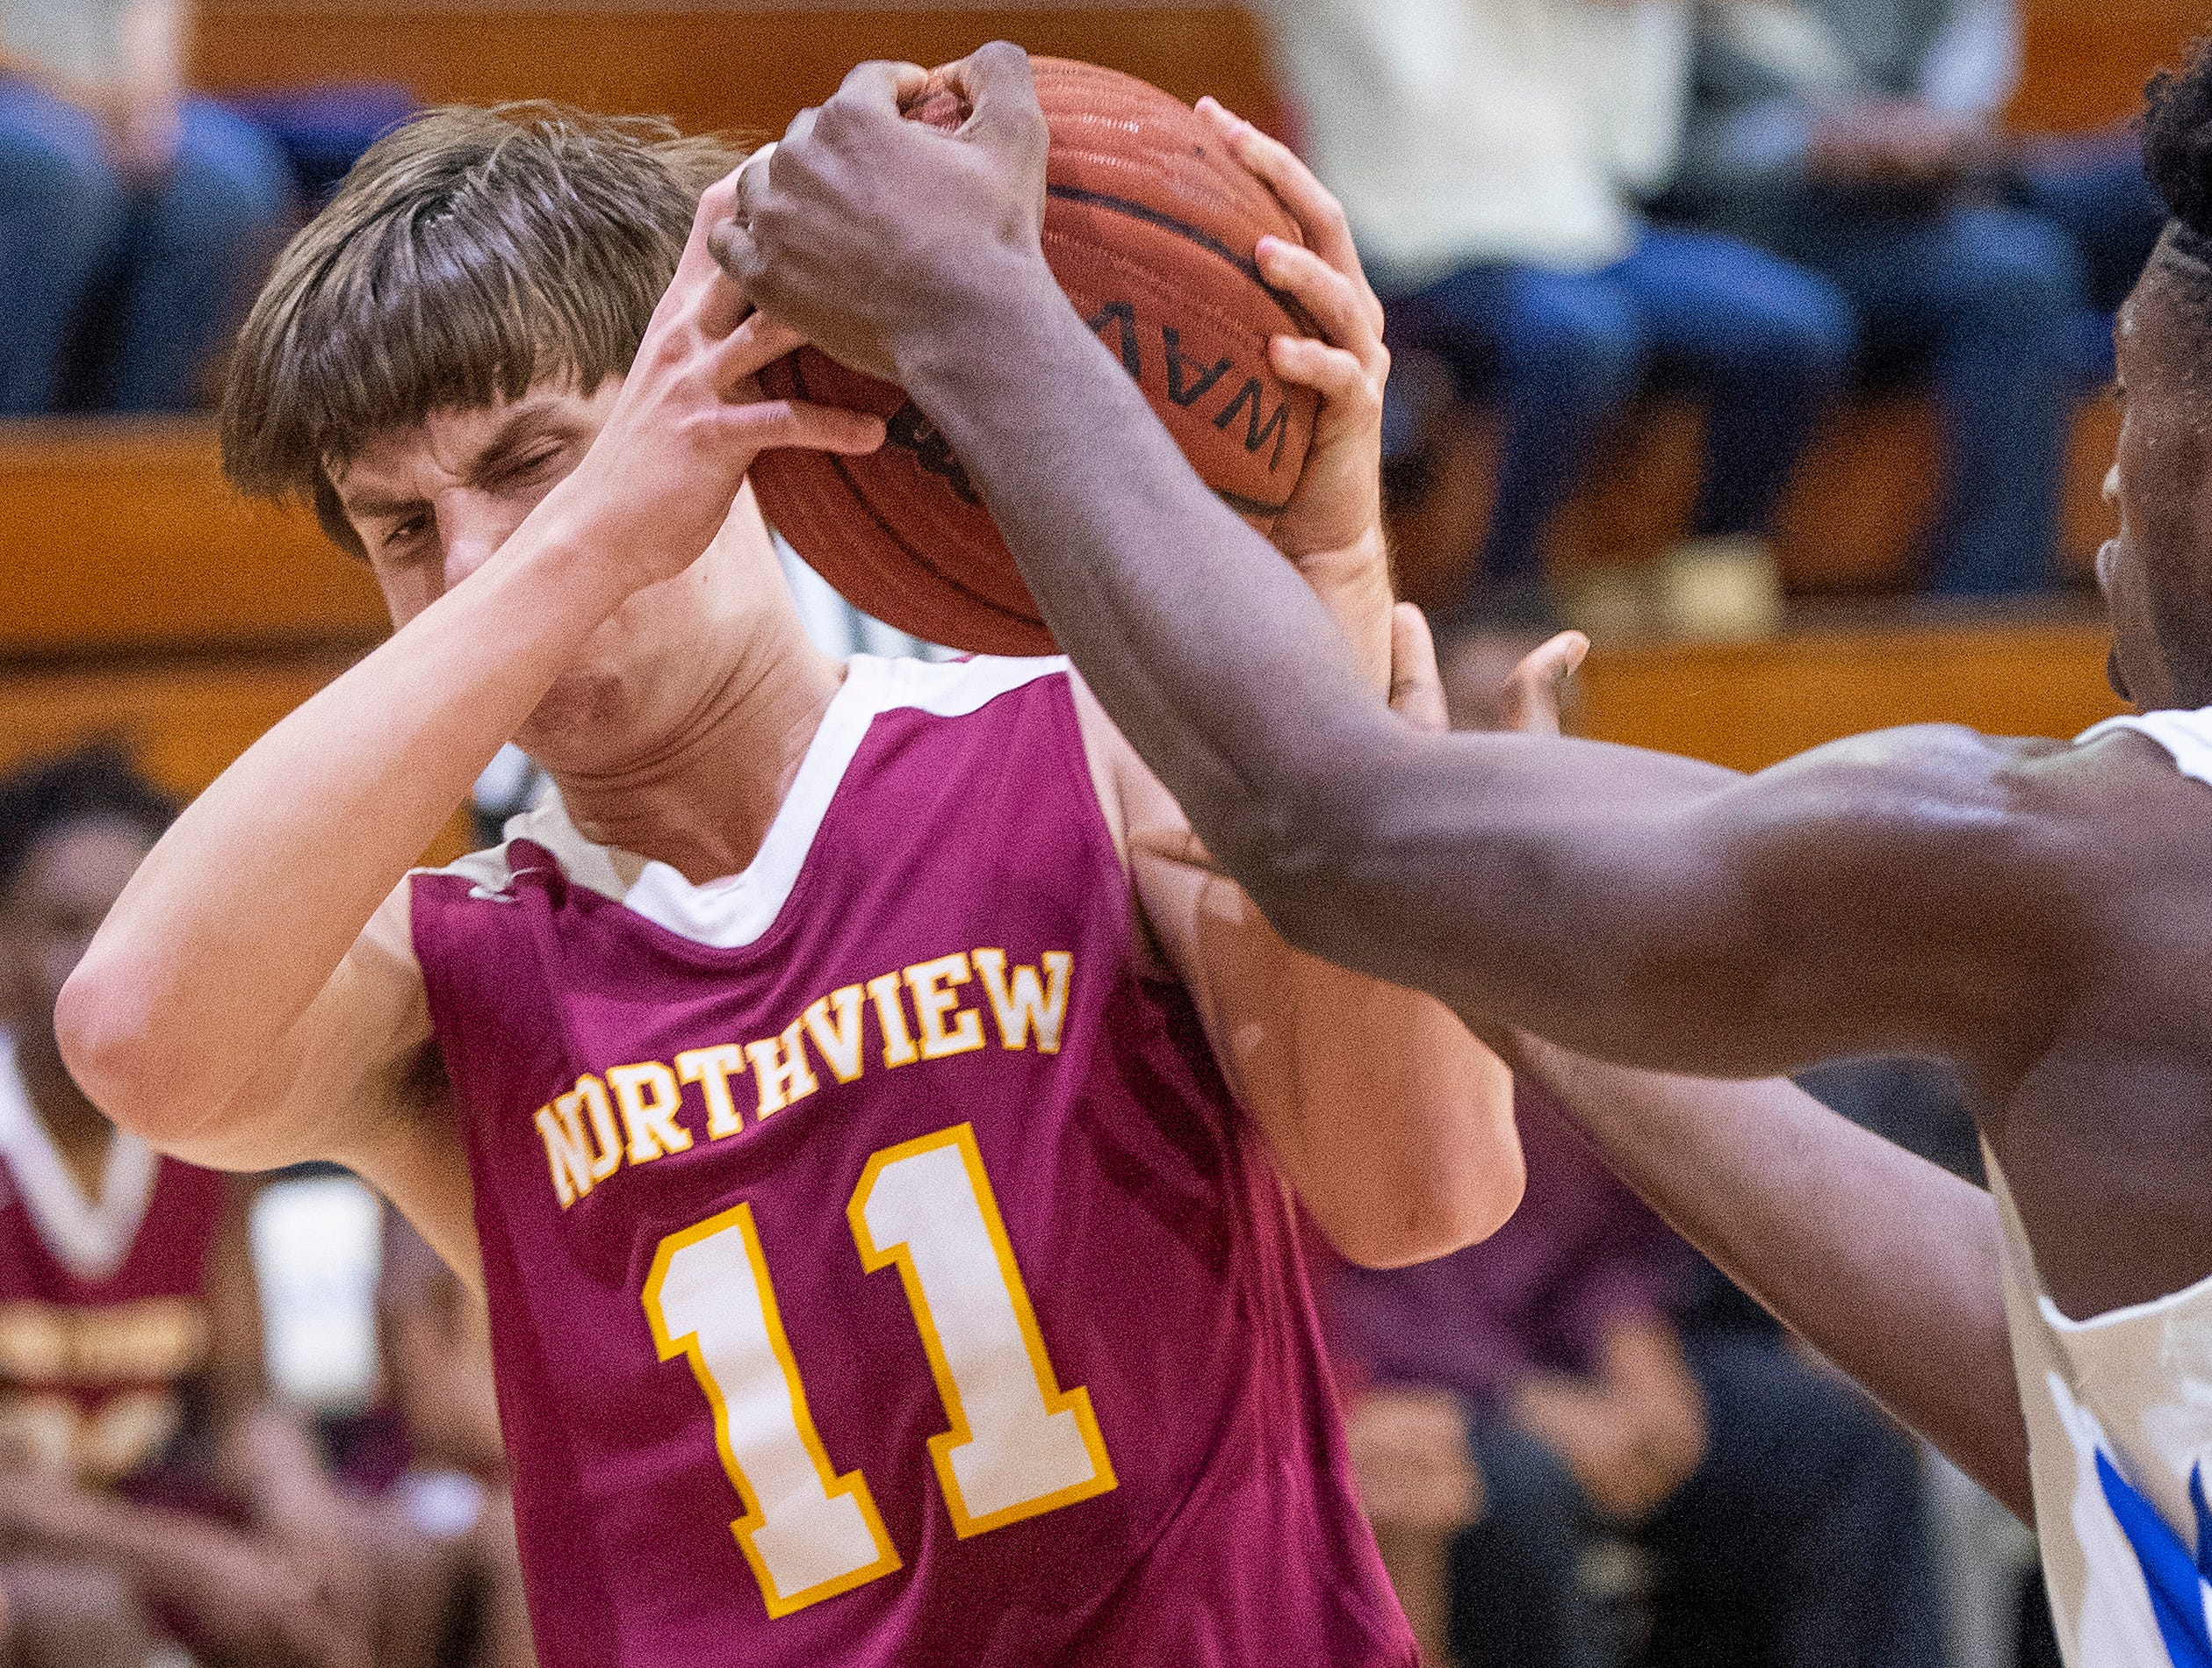 Northview's Harrison Holland (11) and Lanier's Rongie Gordon (30) fight for a loose ball at the Lanier campus in Montgomery, Ala., on Tuesday February 12, 2019.